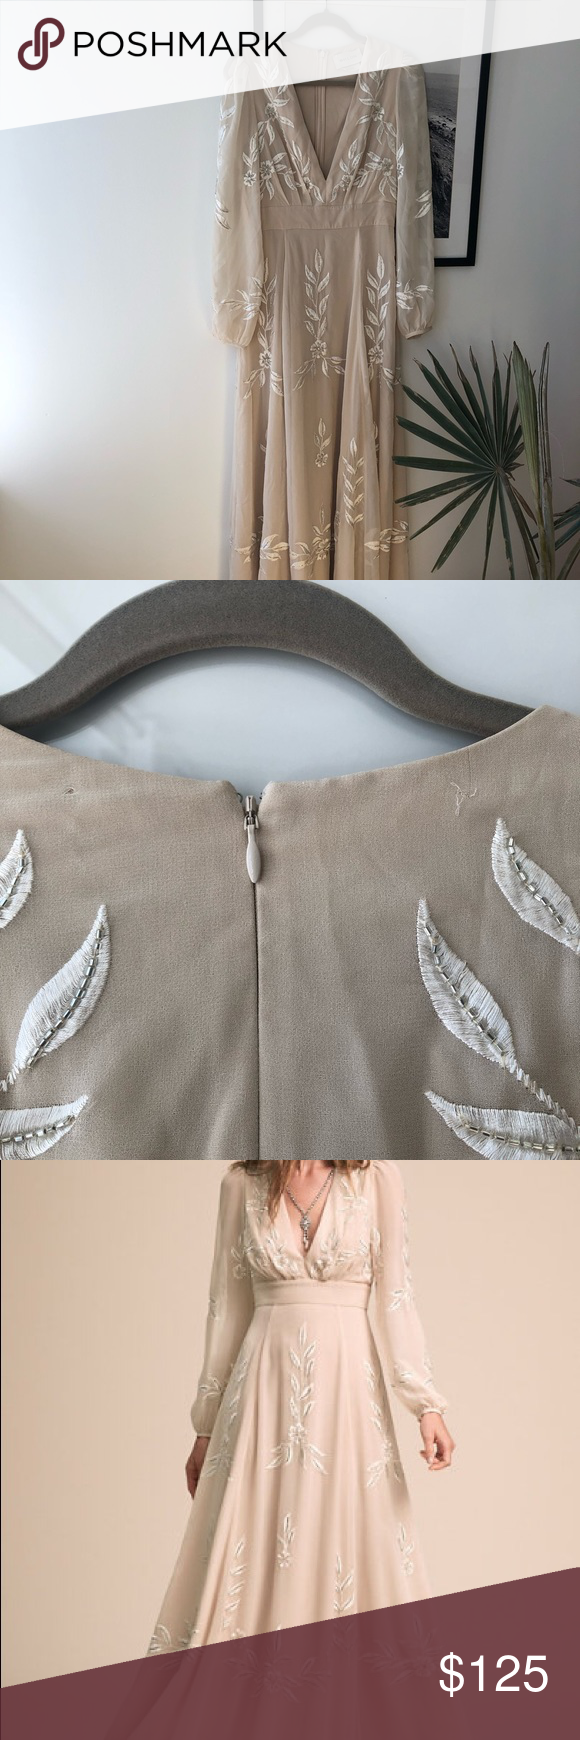 BHLDN Belize Dress Size 8 With a plunging neckline, gorgeous embroidery, and subtle beading, this dress offers endless possibilities. It's equally perfect for engagement photos, a casual beach wedding, a reception look, or a honeymoon date night  Used Once BHLDN Dresses Wedding #beachhoneymoonclothes